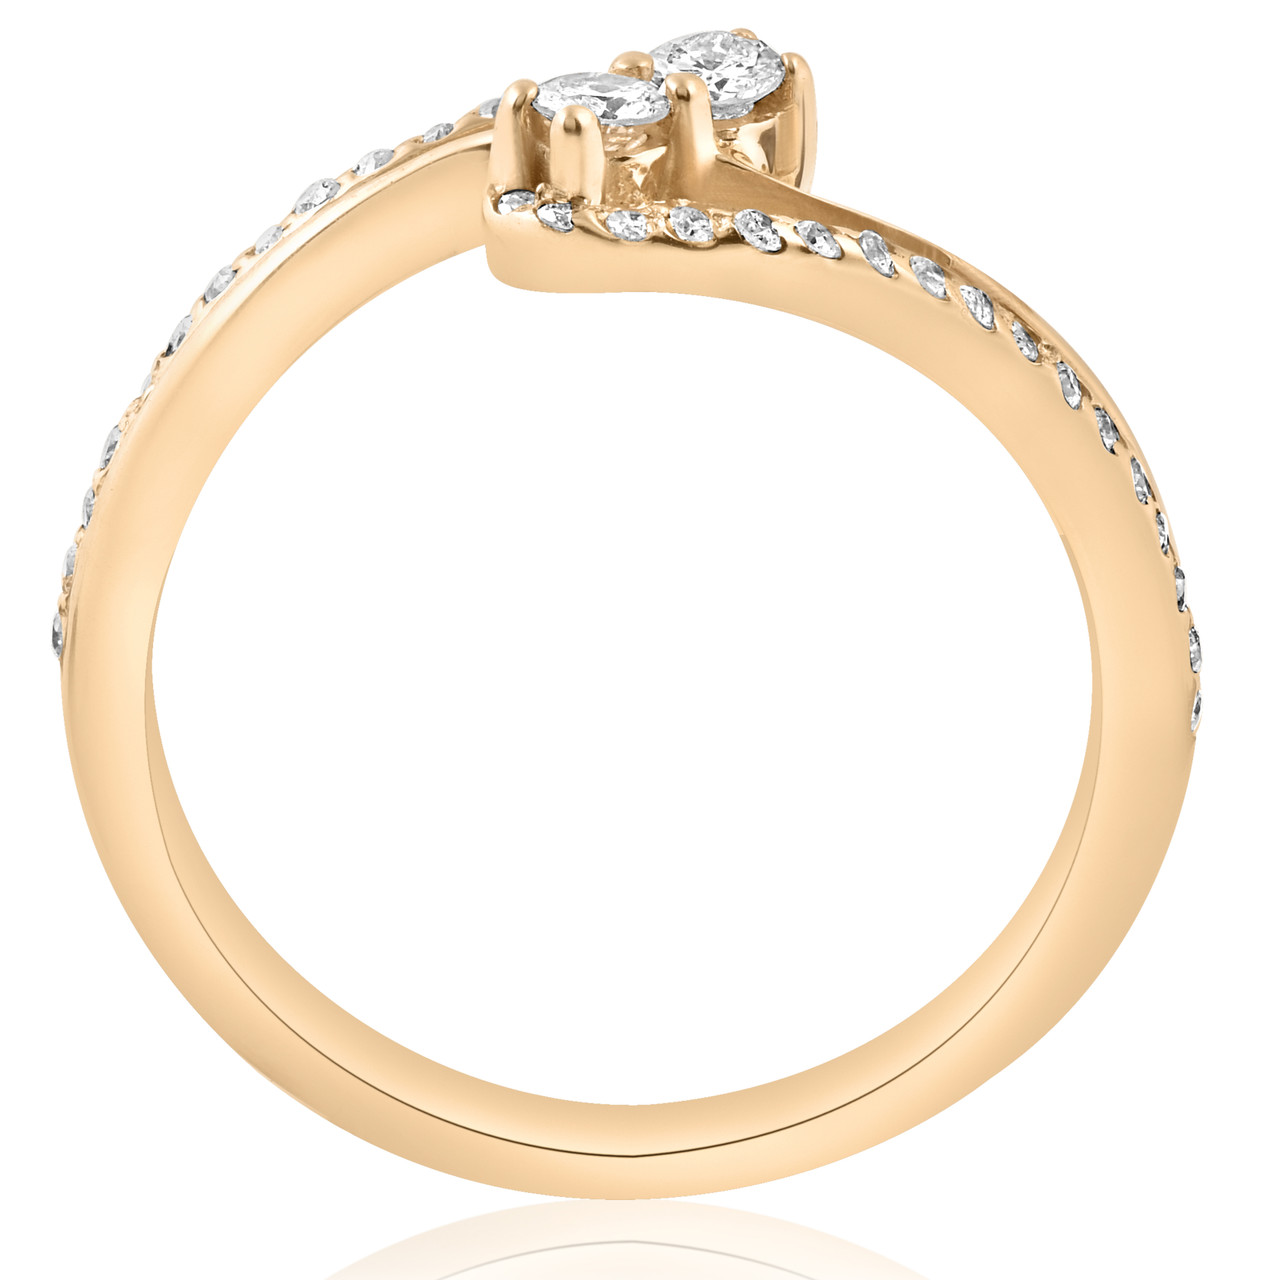 12ct two stone diamond forever us engagement ring 10k yellow gold ij i1 i2 - 10k Wedding Ring